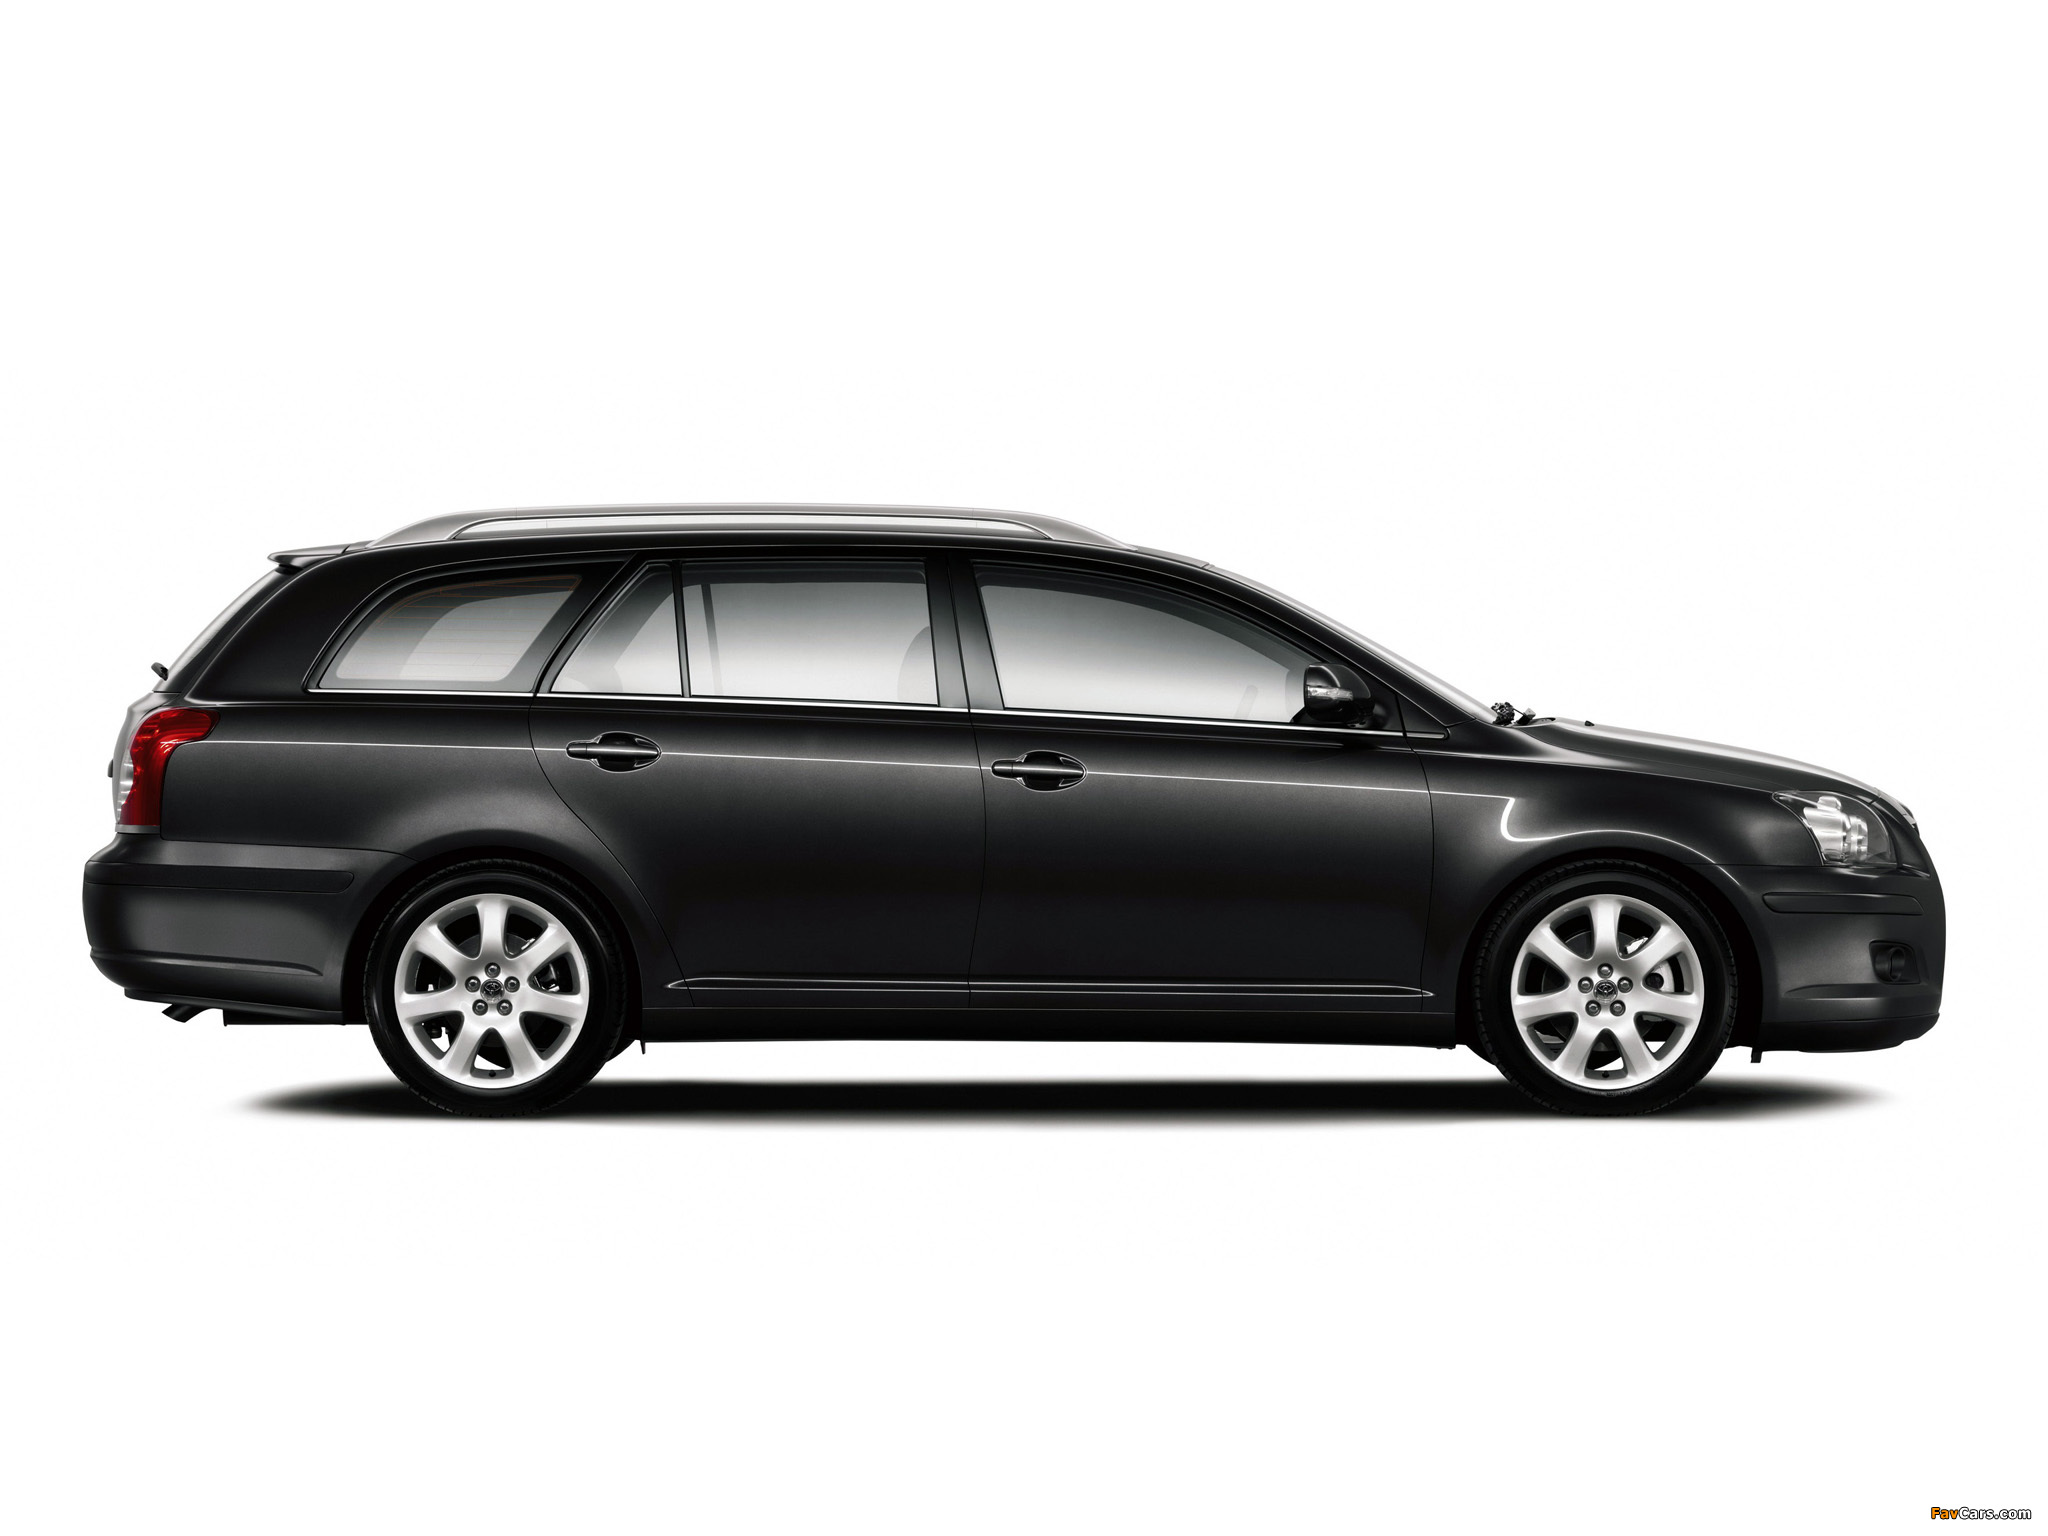 pictures of toyota avensis wagon 2006 08 2048x1536. Black Bedroom Furniture Sets. Home Design Ideas